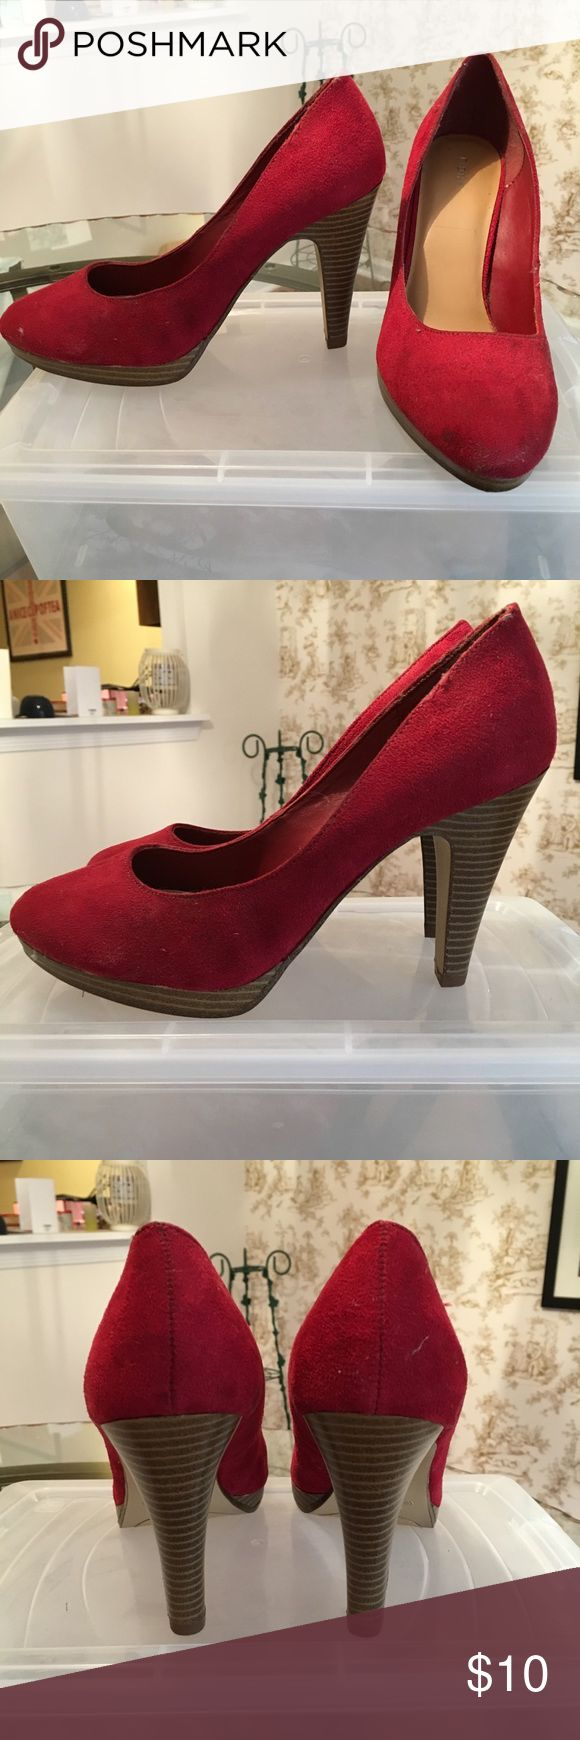 Faux Suede Red Heels Faux suede red shoe with stacked heel. 3 inch heel. Size 8.5 Wide. Worn once. Stored in plastic shoe box. Payless Shoes Heels